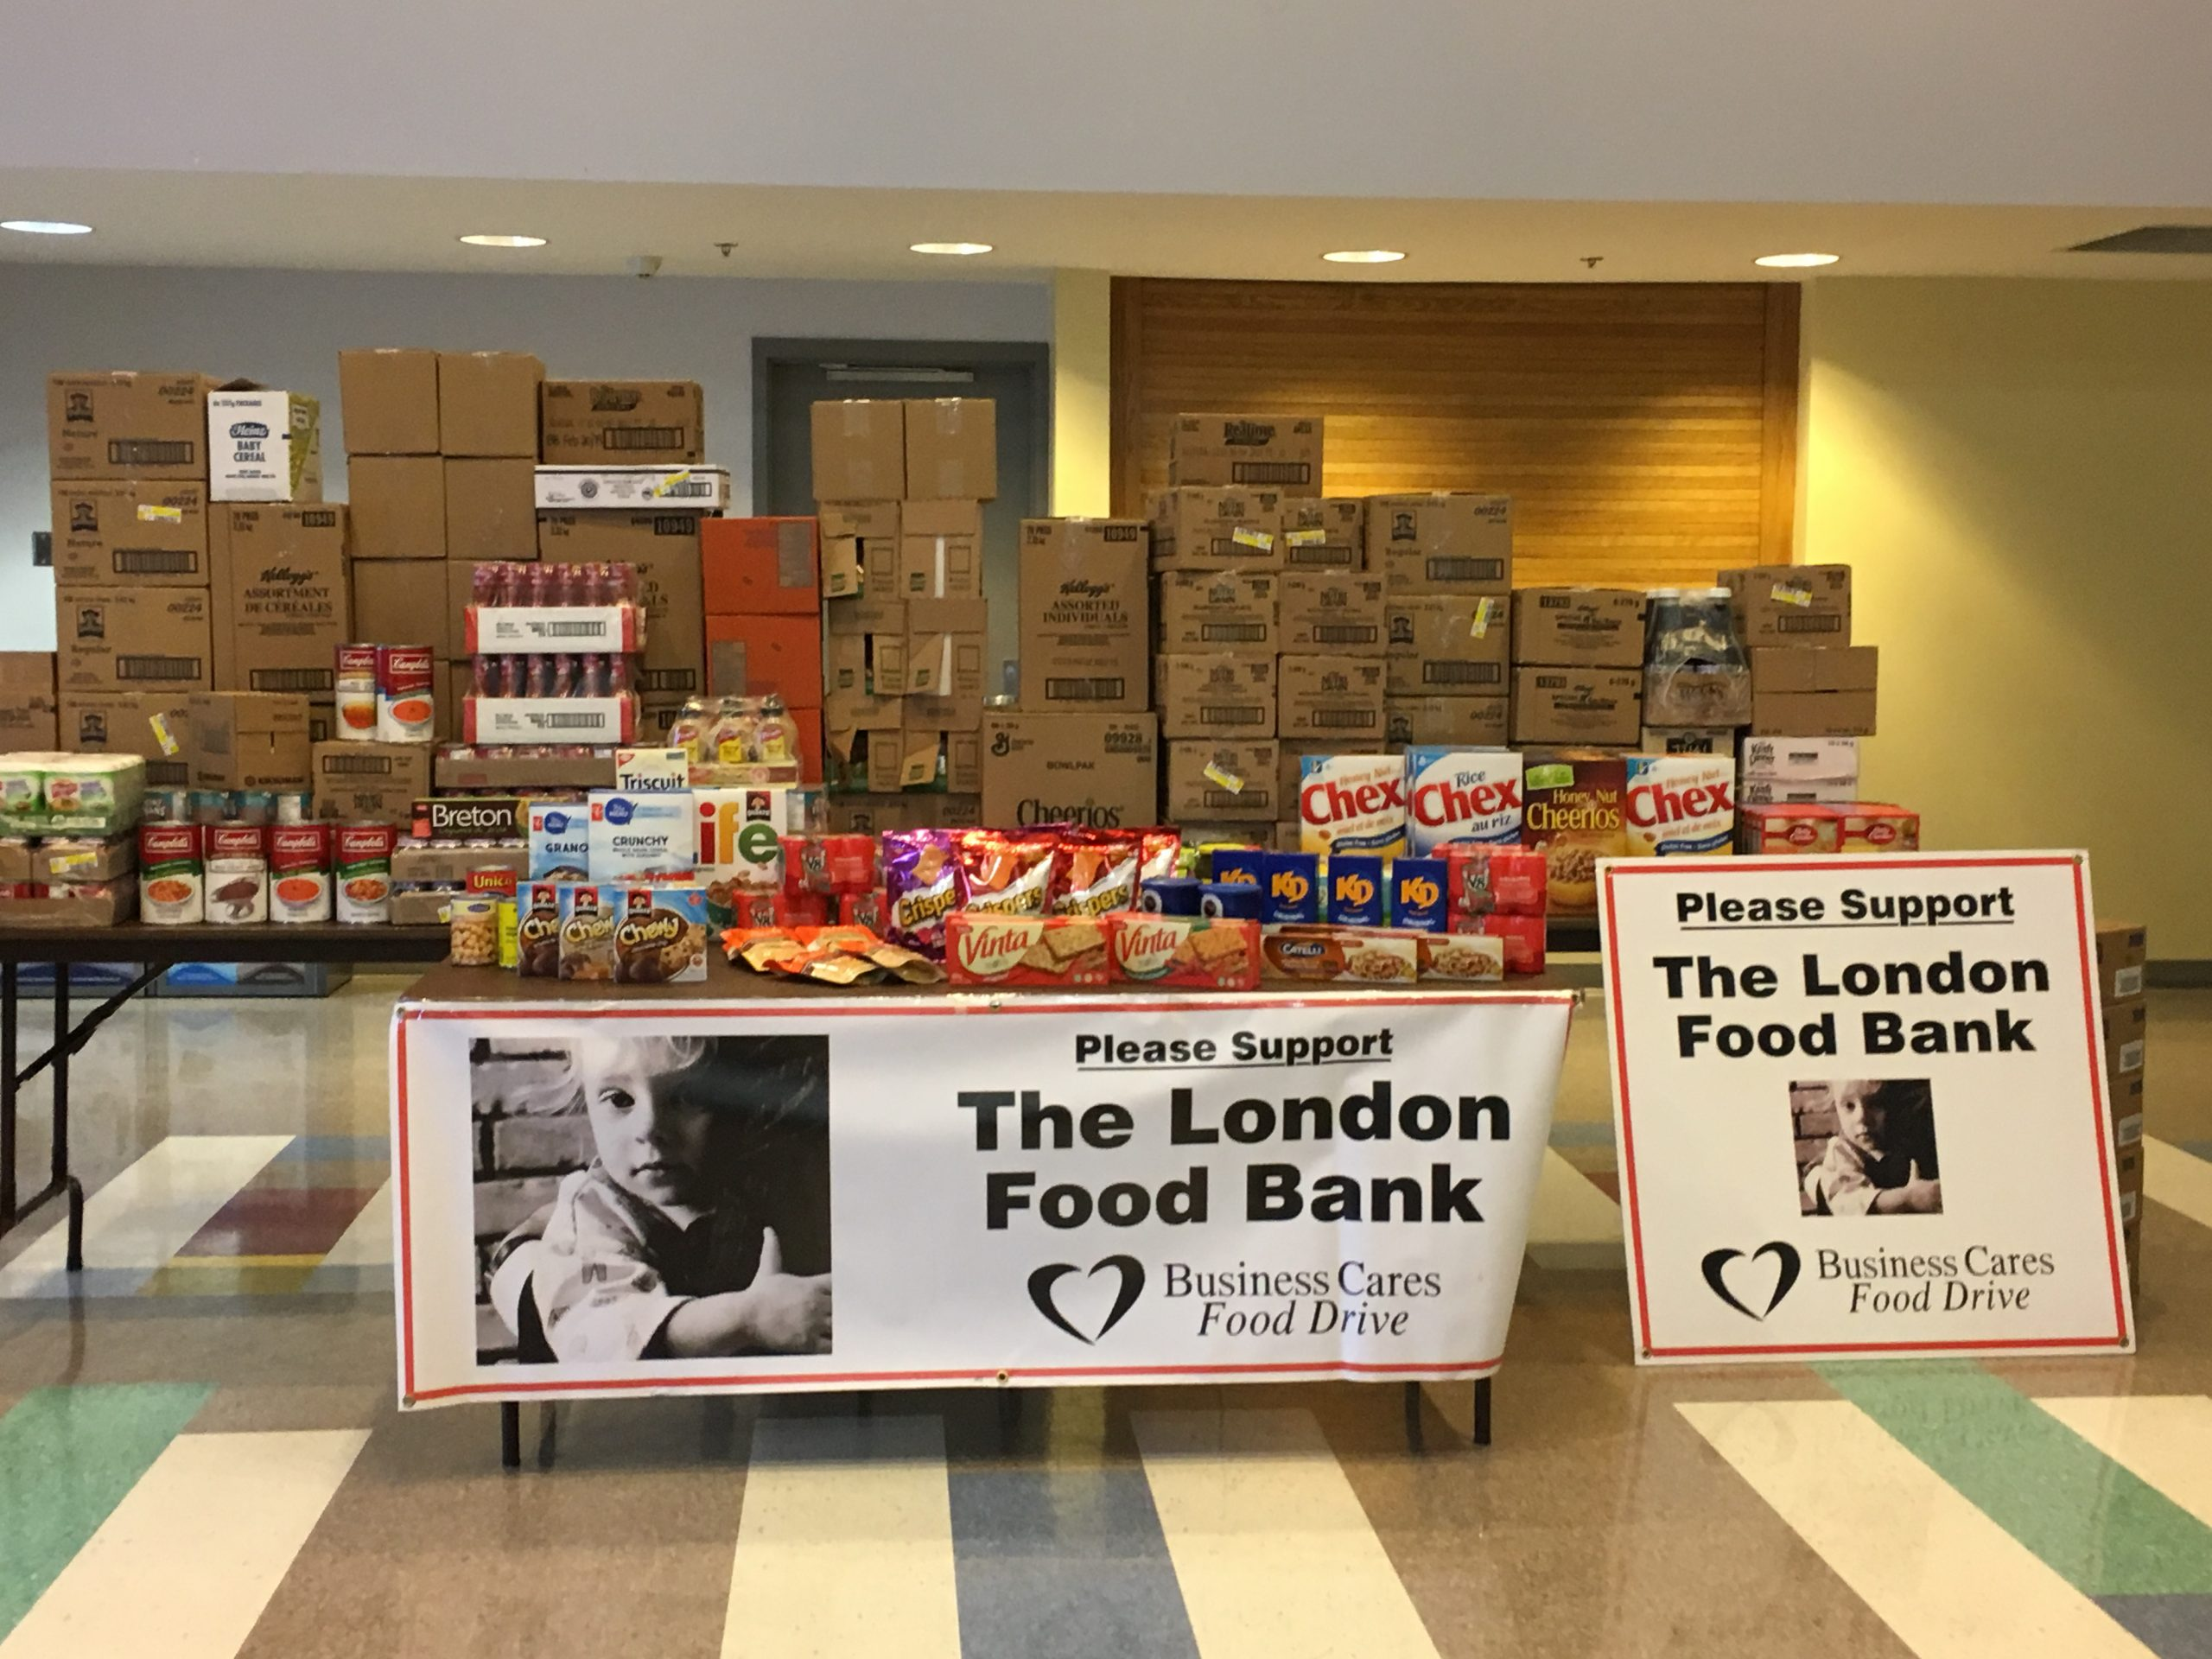 Business Cares Food Drive: Kicks off campaign